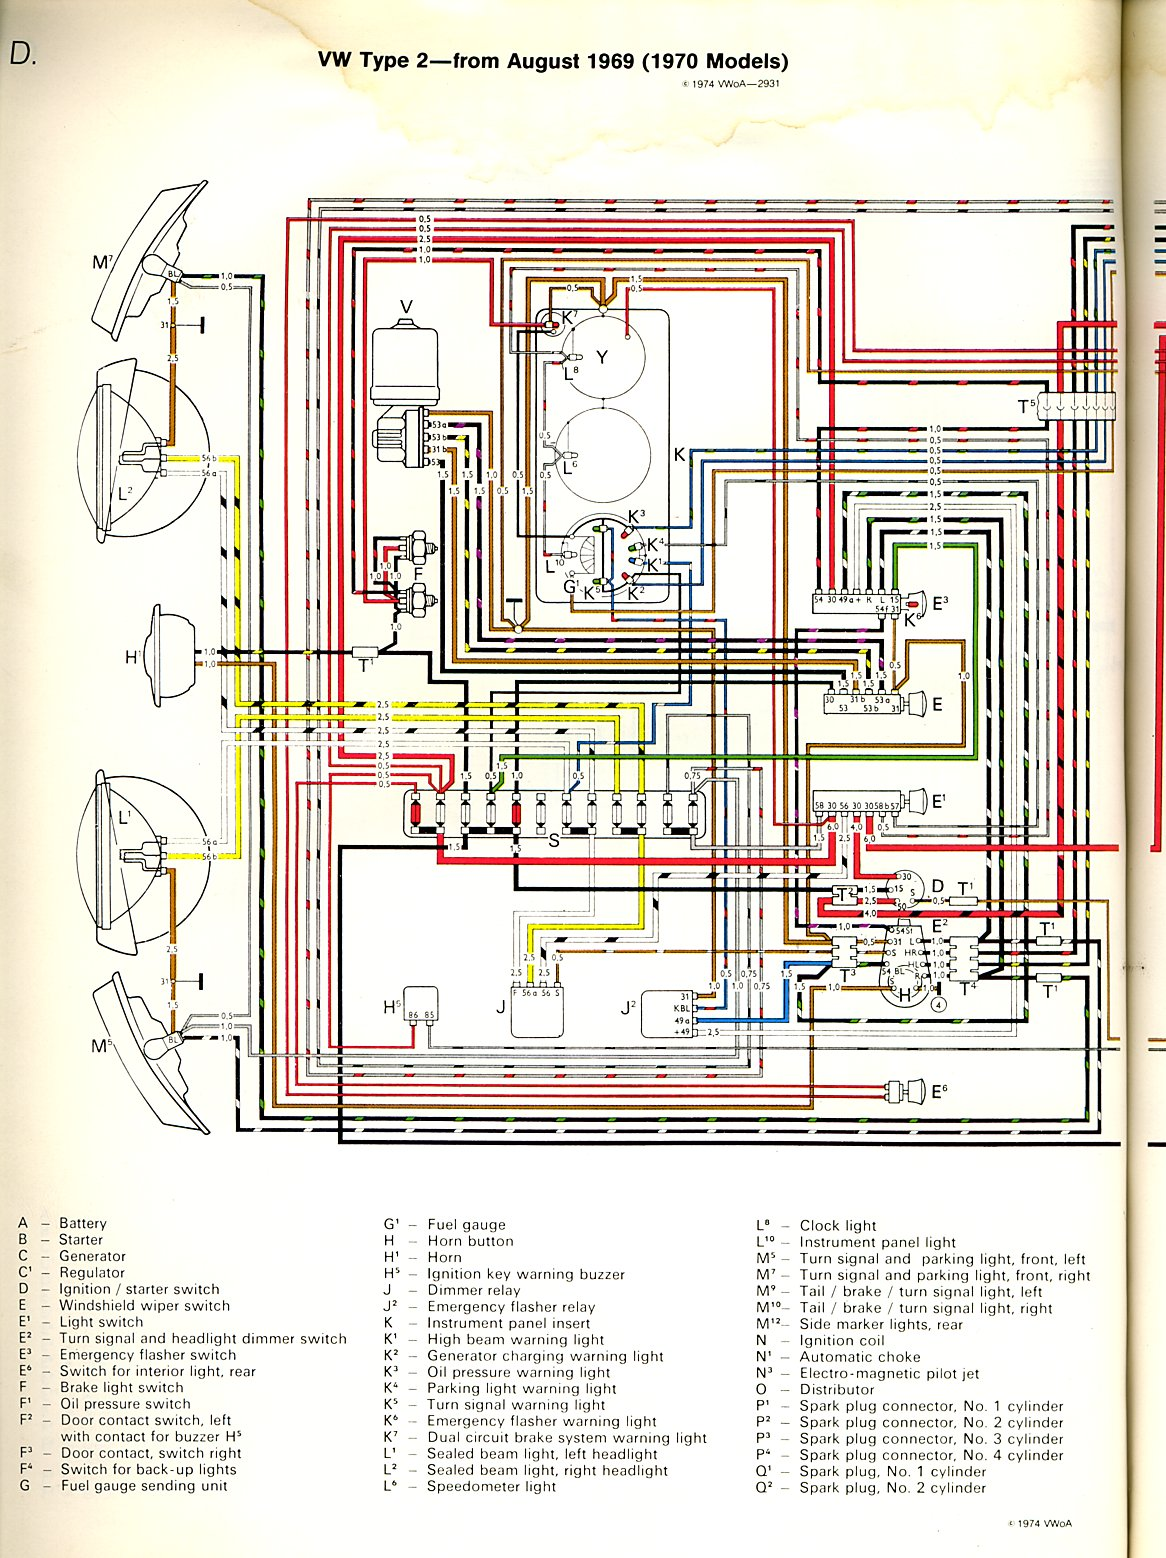 baybus_70a bus wiring diagram vw wiring harness diagram \u2022 wiring diagrams j 1971 vw bus wiring diagram at nearapp.co